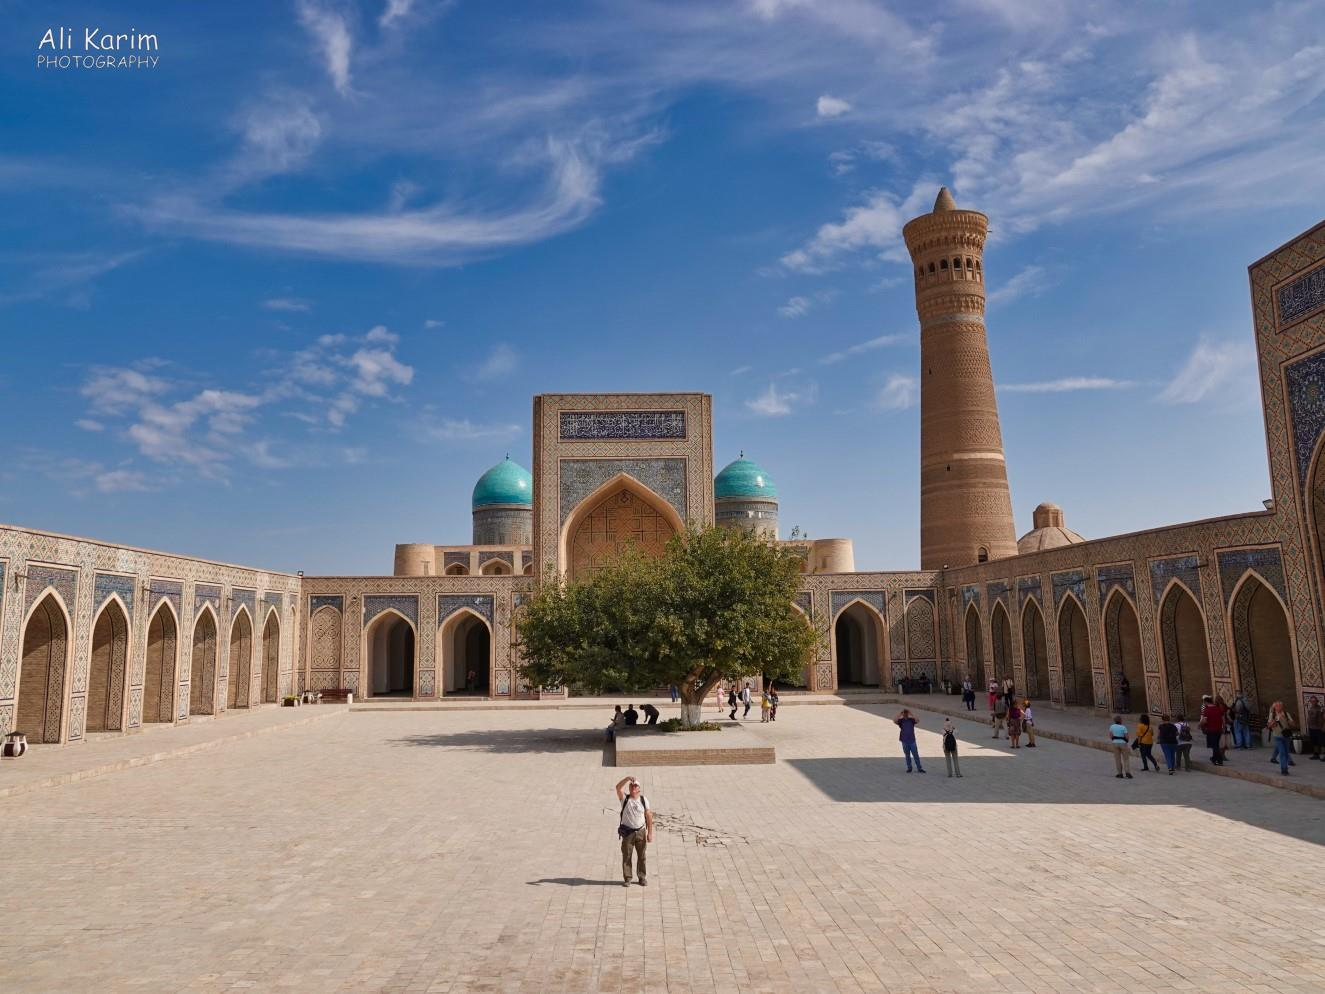 Bukhara, Oct 2019, Inside the huge and impressive Kalyan mosque, with the equally impressive Kalyan minaret. The blue domes in the back belonged to the Mir Arab madrassah opposite the mosque. The mosque was designed to hold 12,000 worshippers